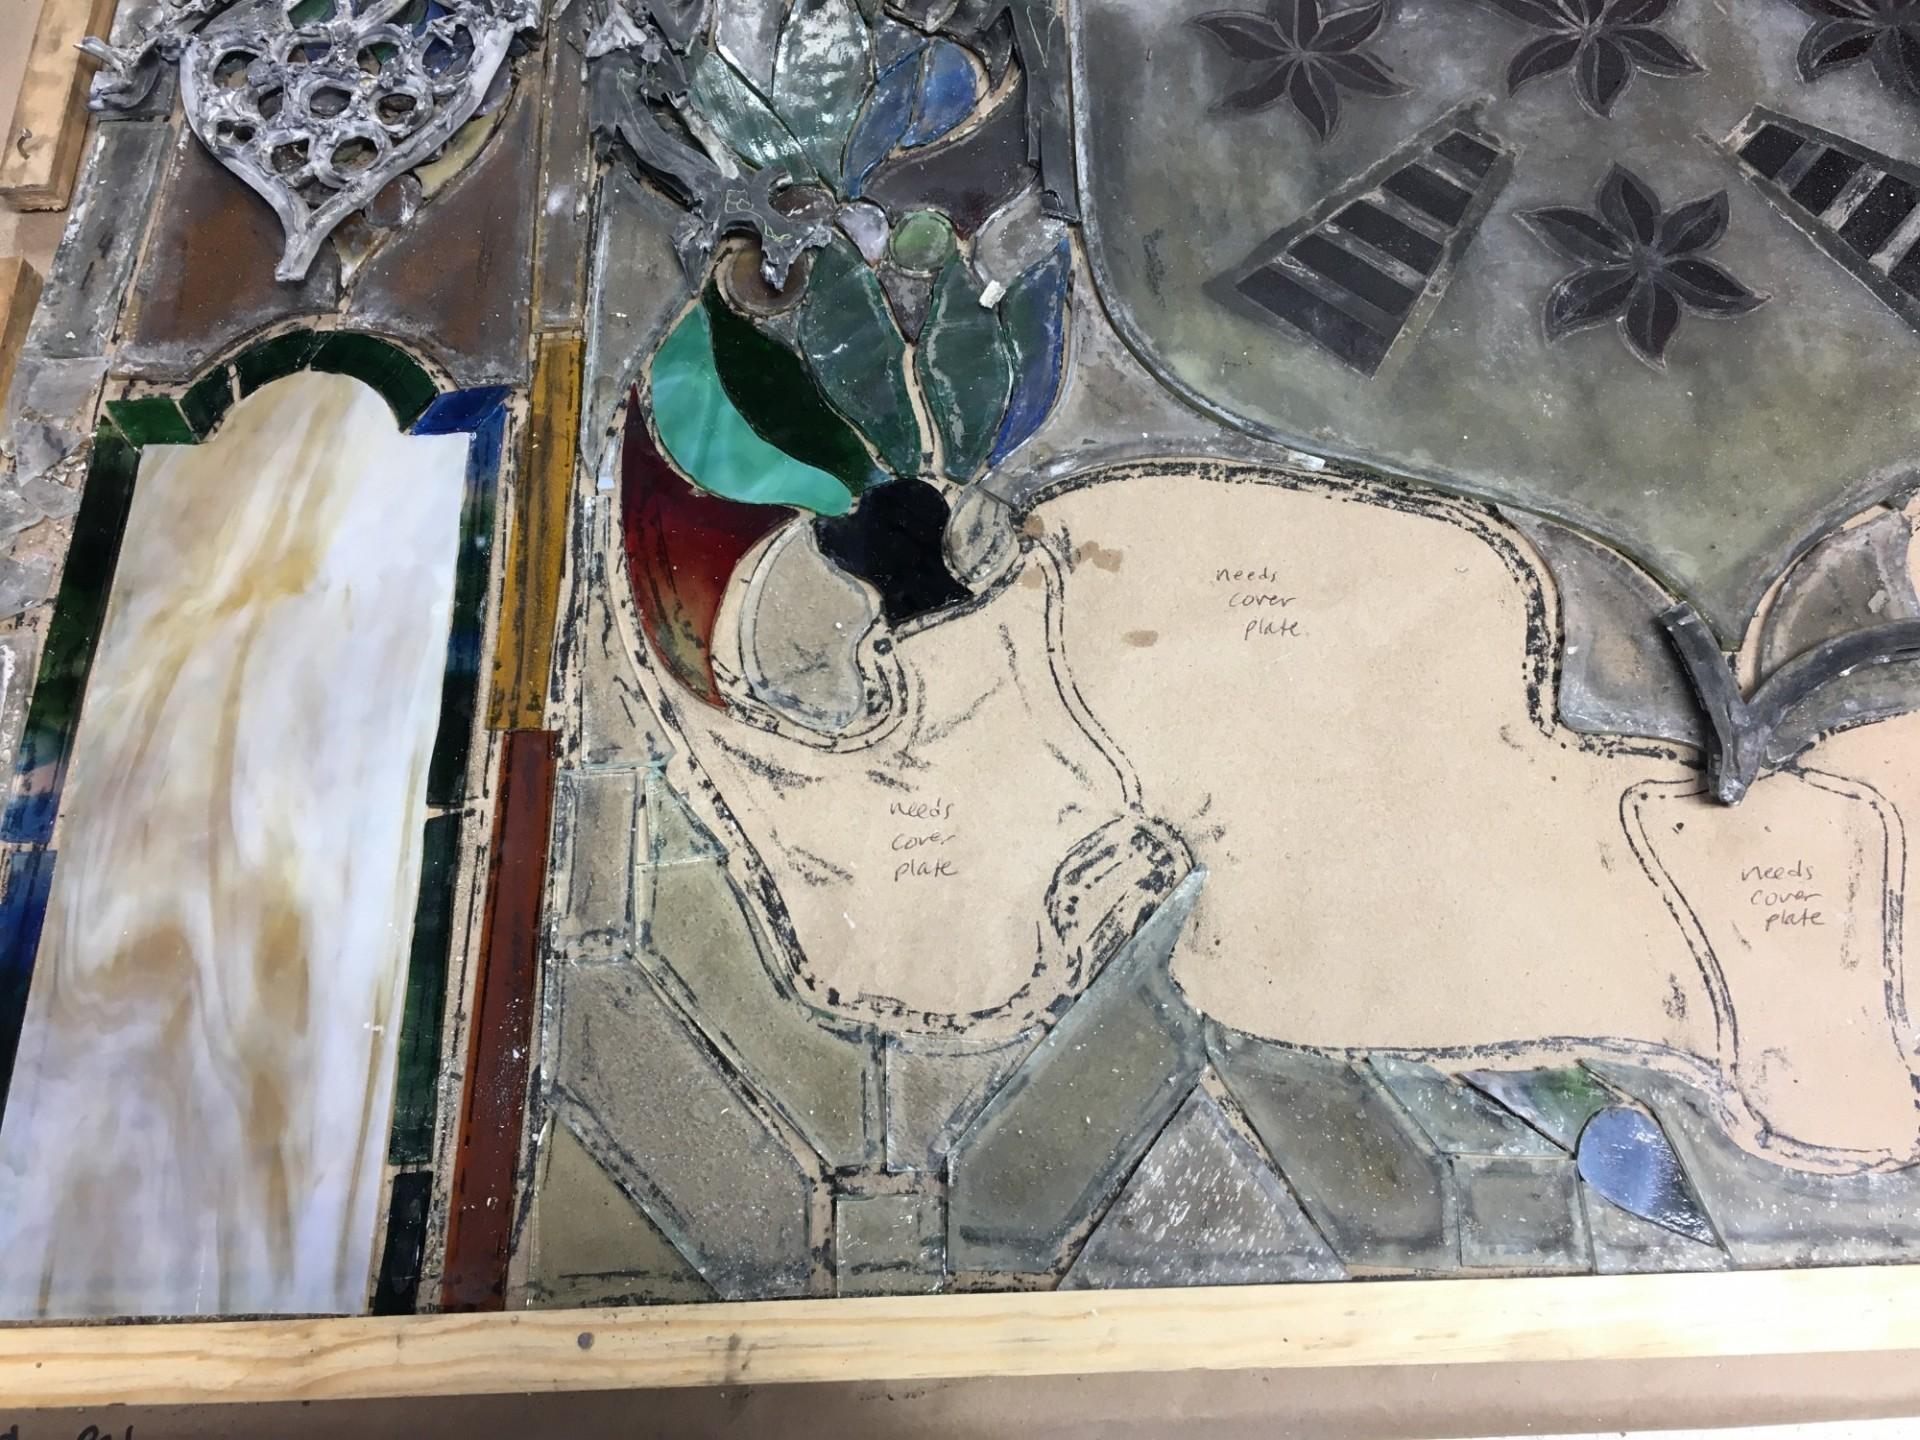 The stained-glass windows from the dome have traveled to a restoration studio for cleaning and repairs.